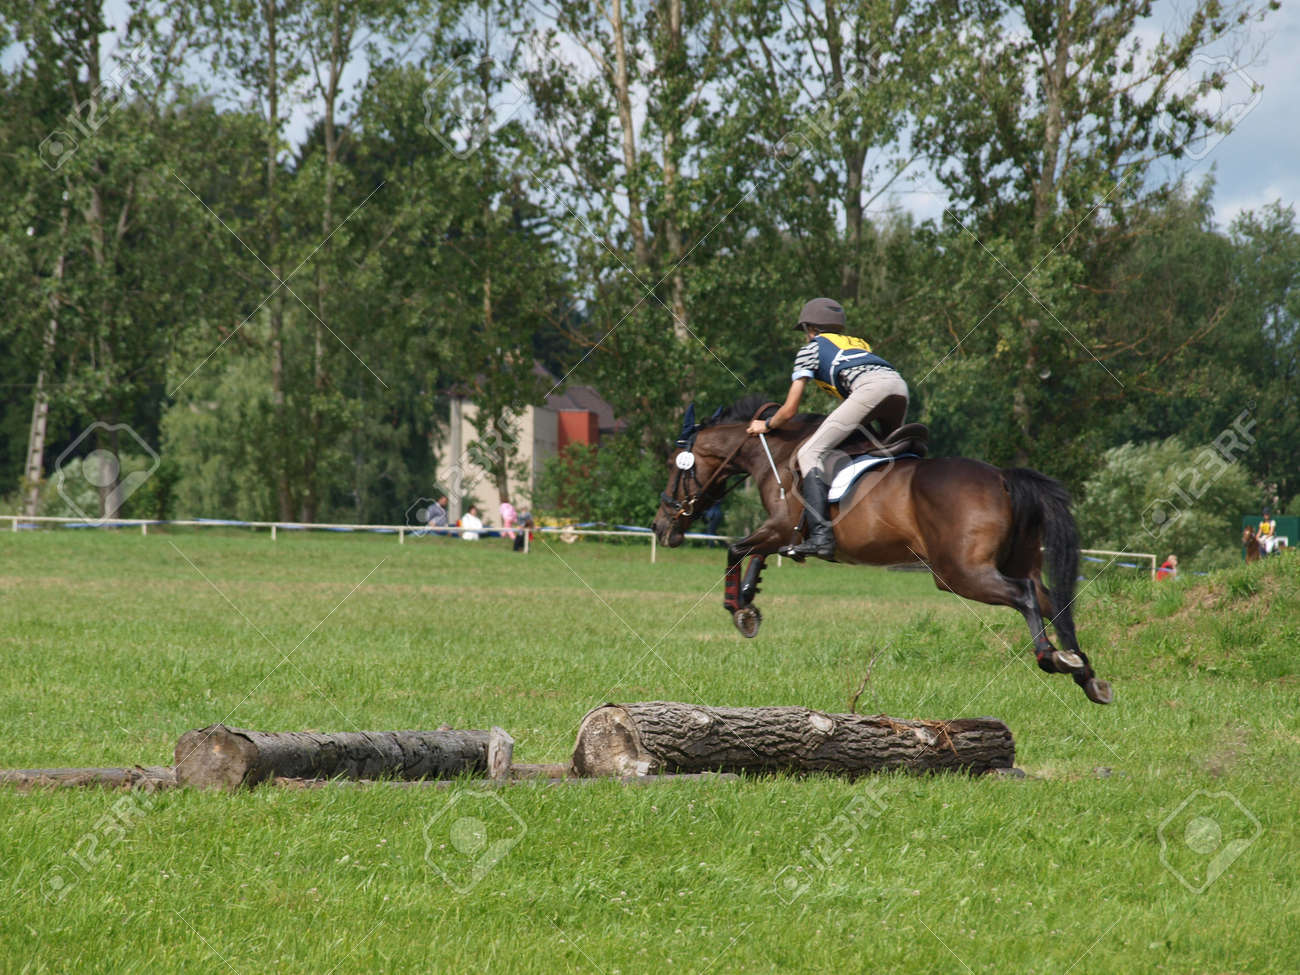 Jumping Horse Races Cross Country Stock Photo Picture And Royalty Free Image Image 18232935